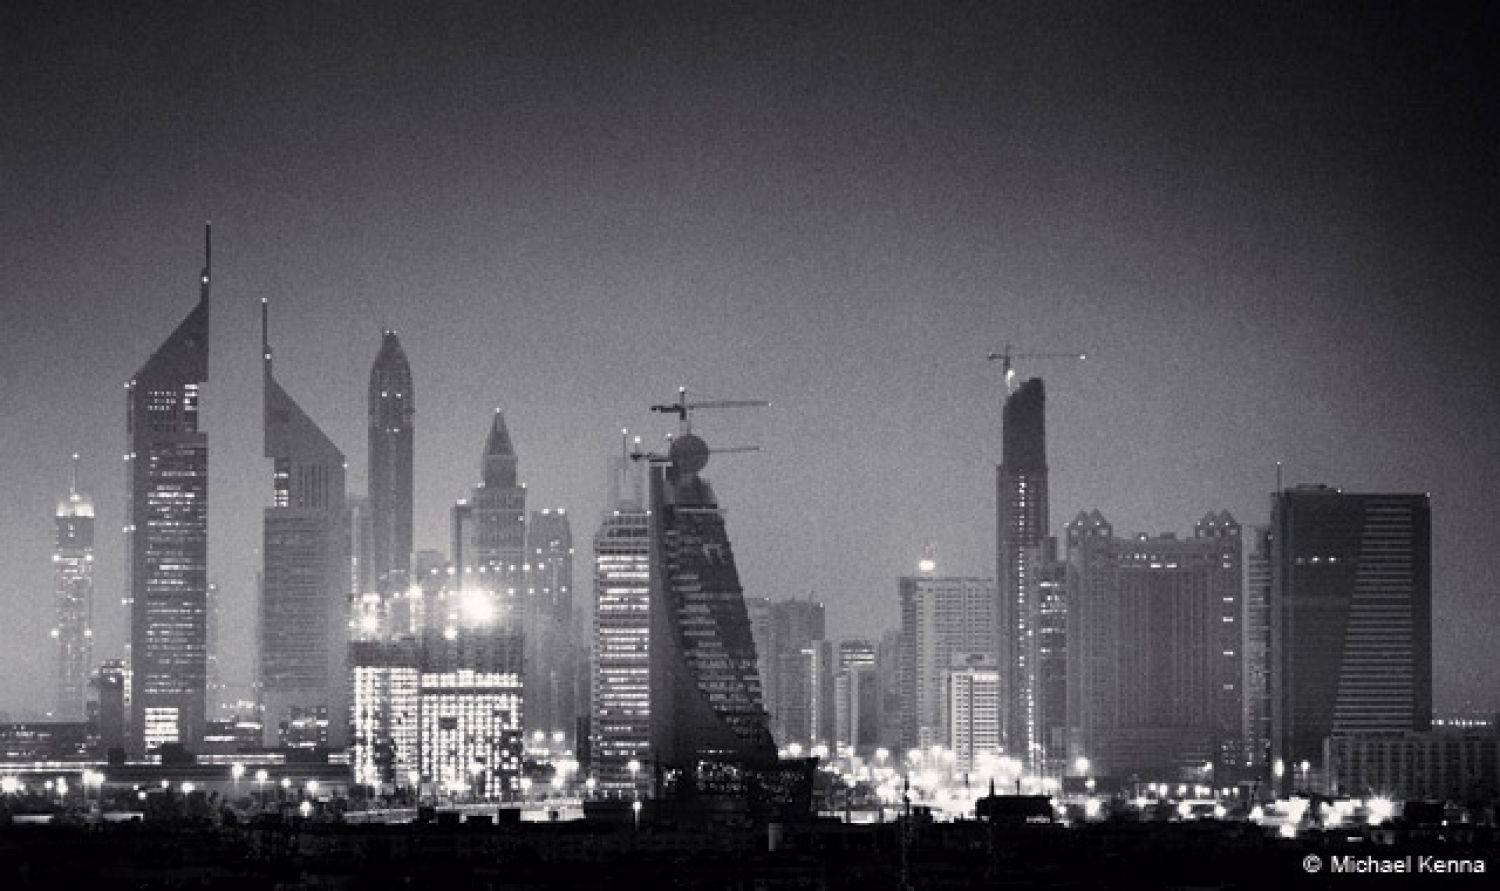 Skyline, Study 1, Dubai, United Arab Emirates (2006)